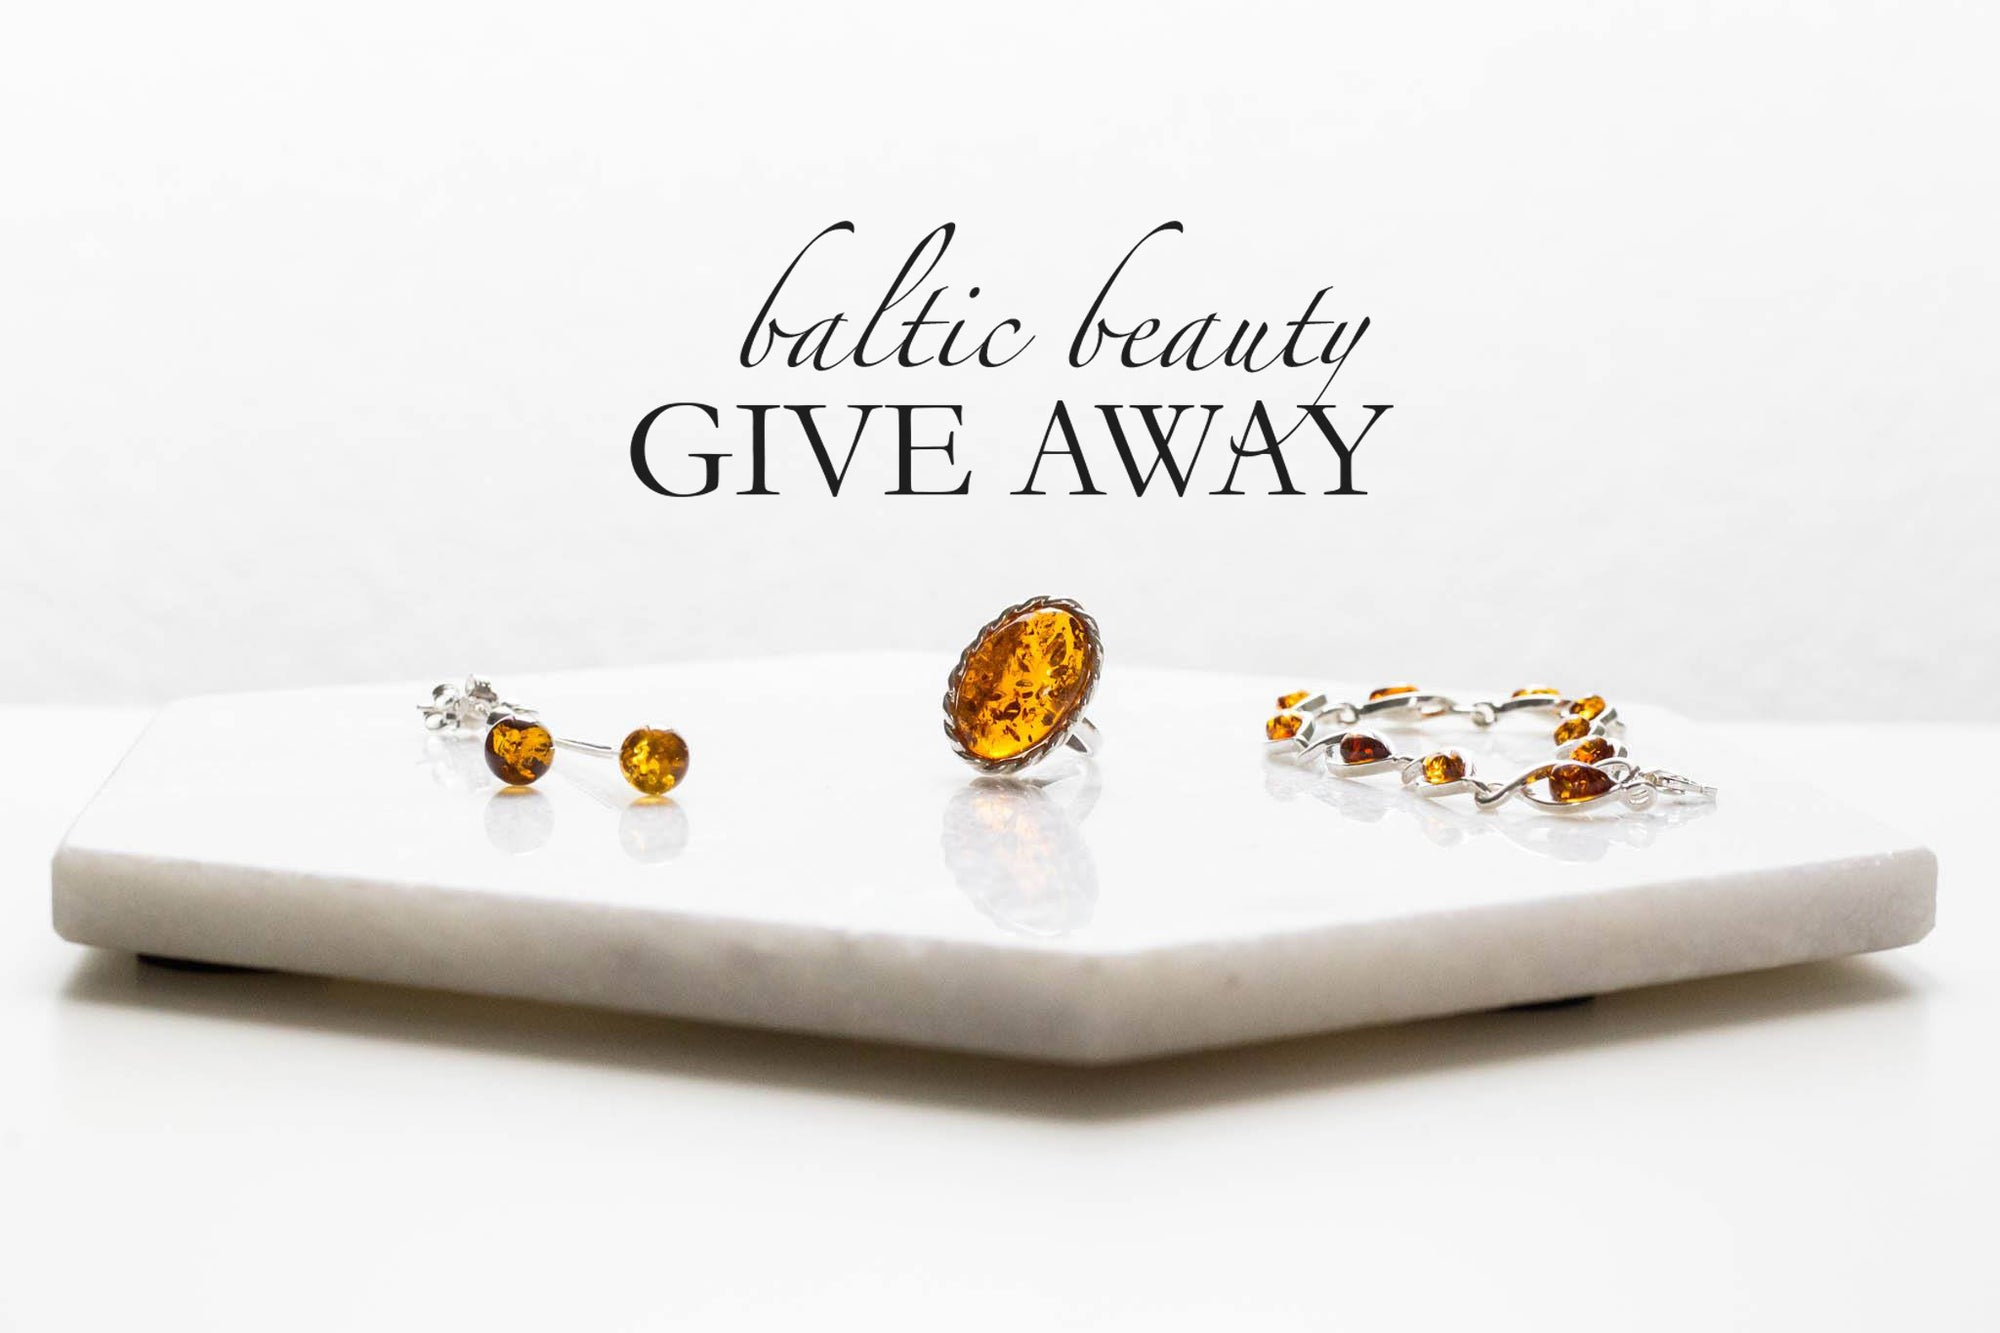 Baltic Beauty Giveaway